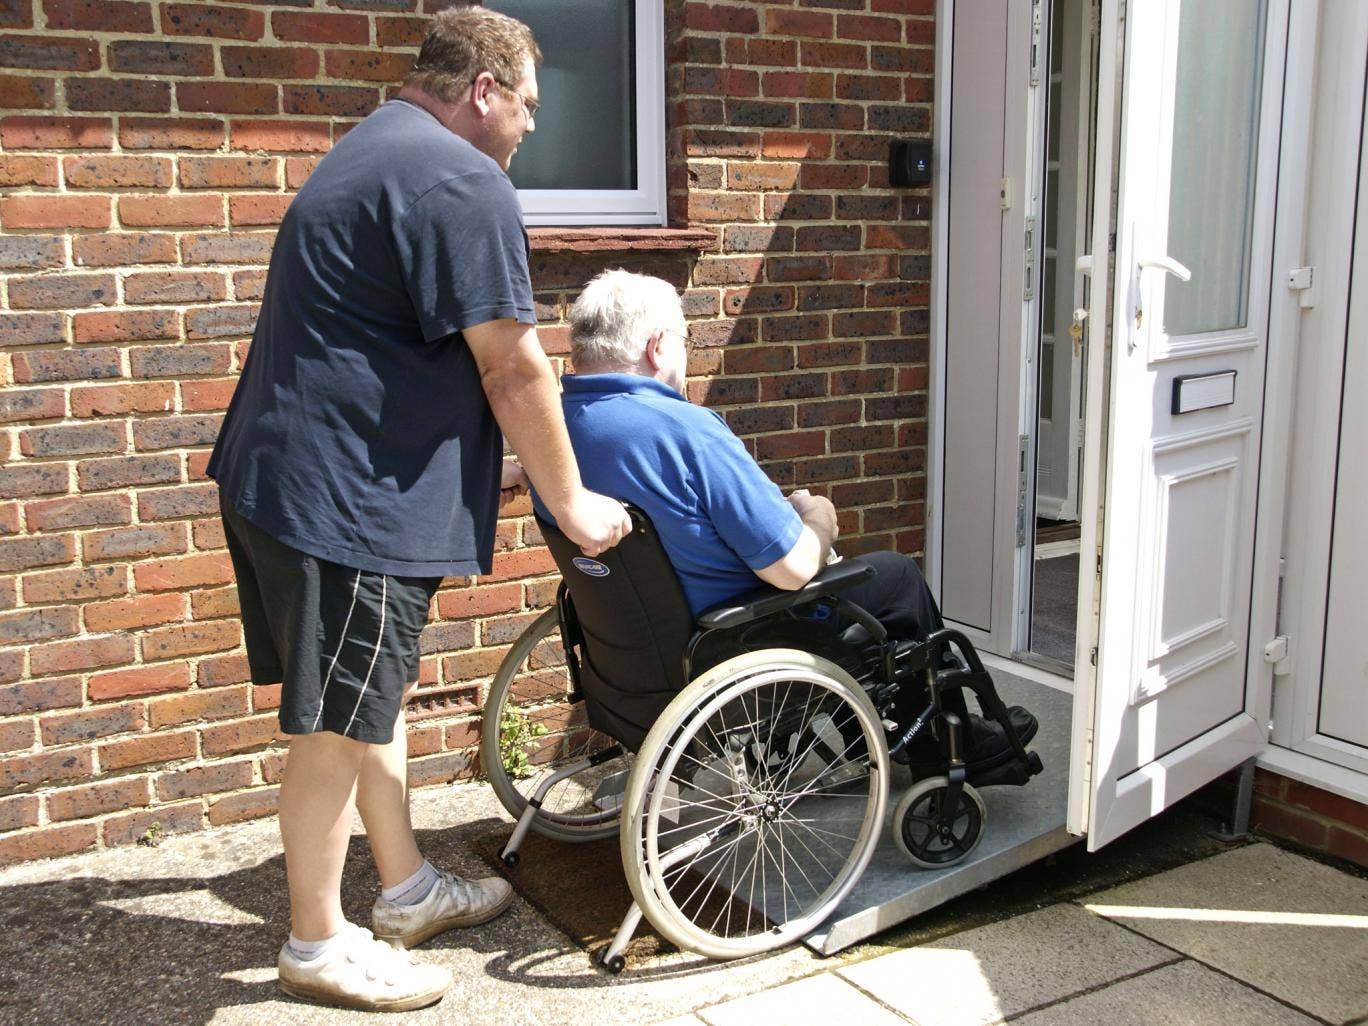 264,000 disabled people in social housing will lose in total over £6,300 each by 2017.